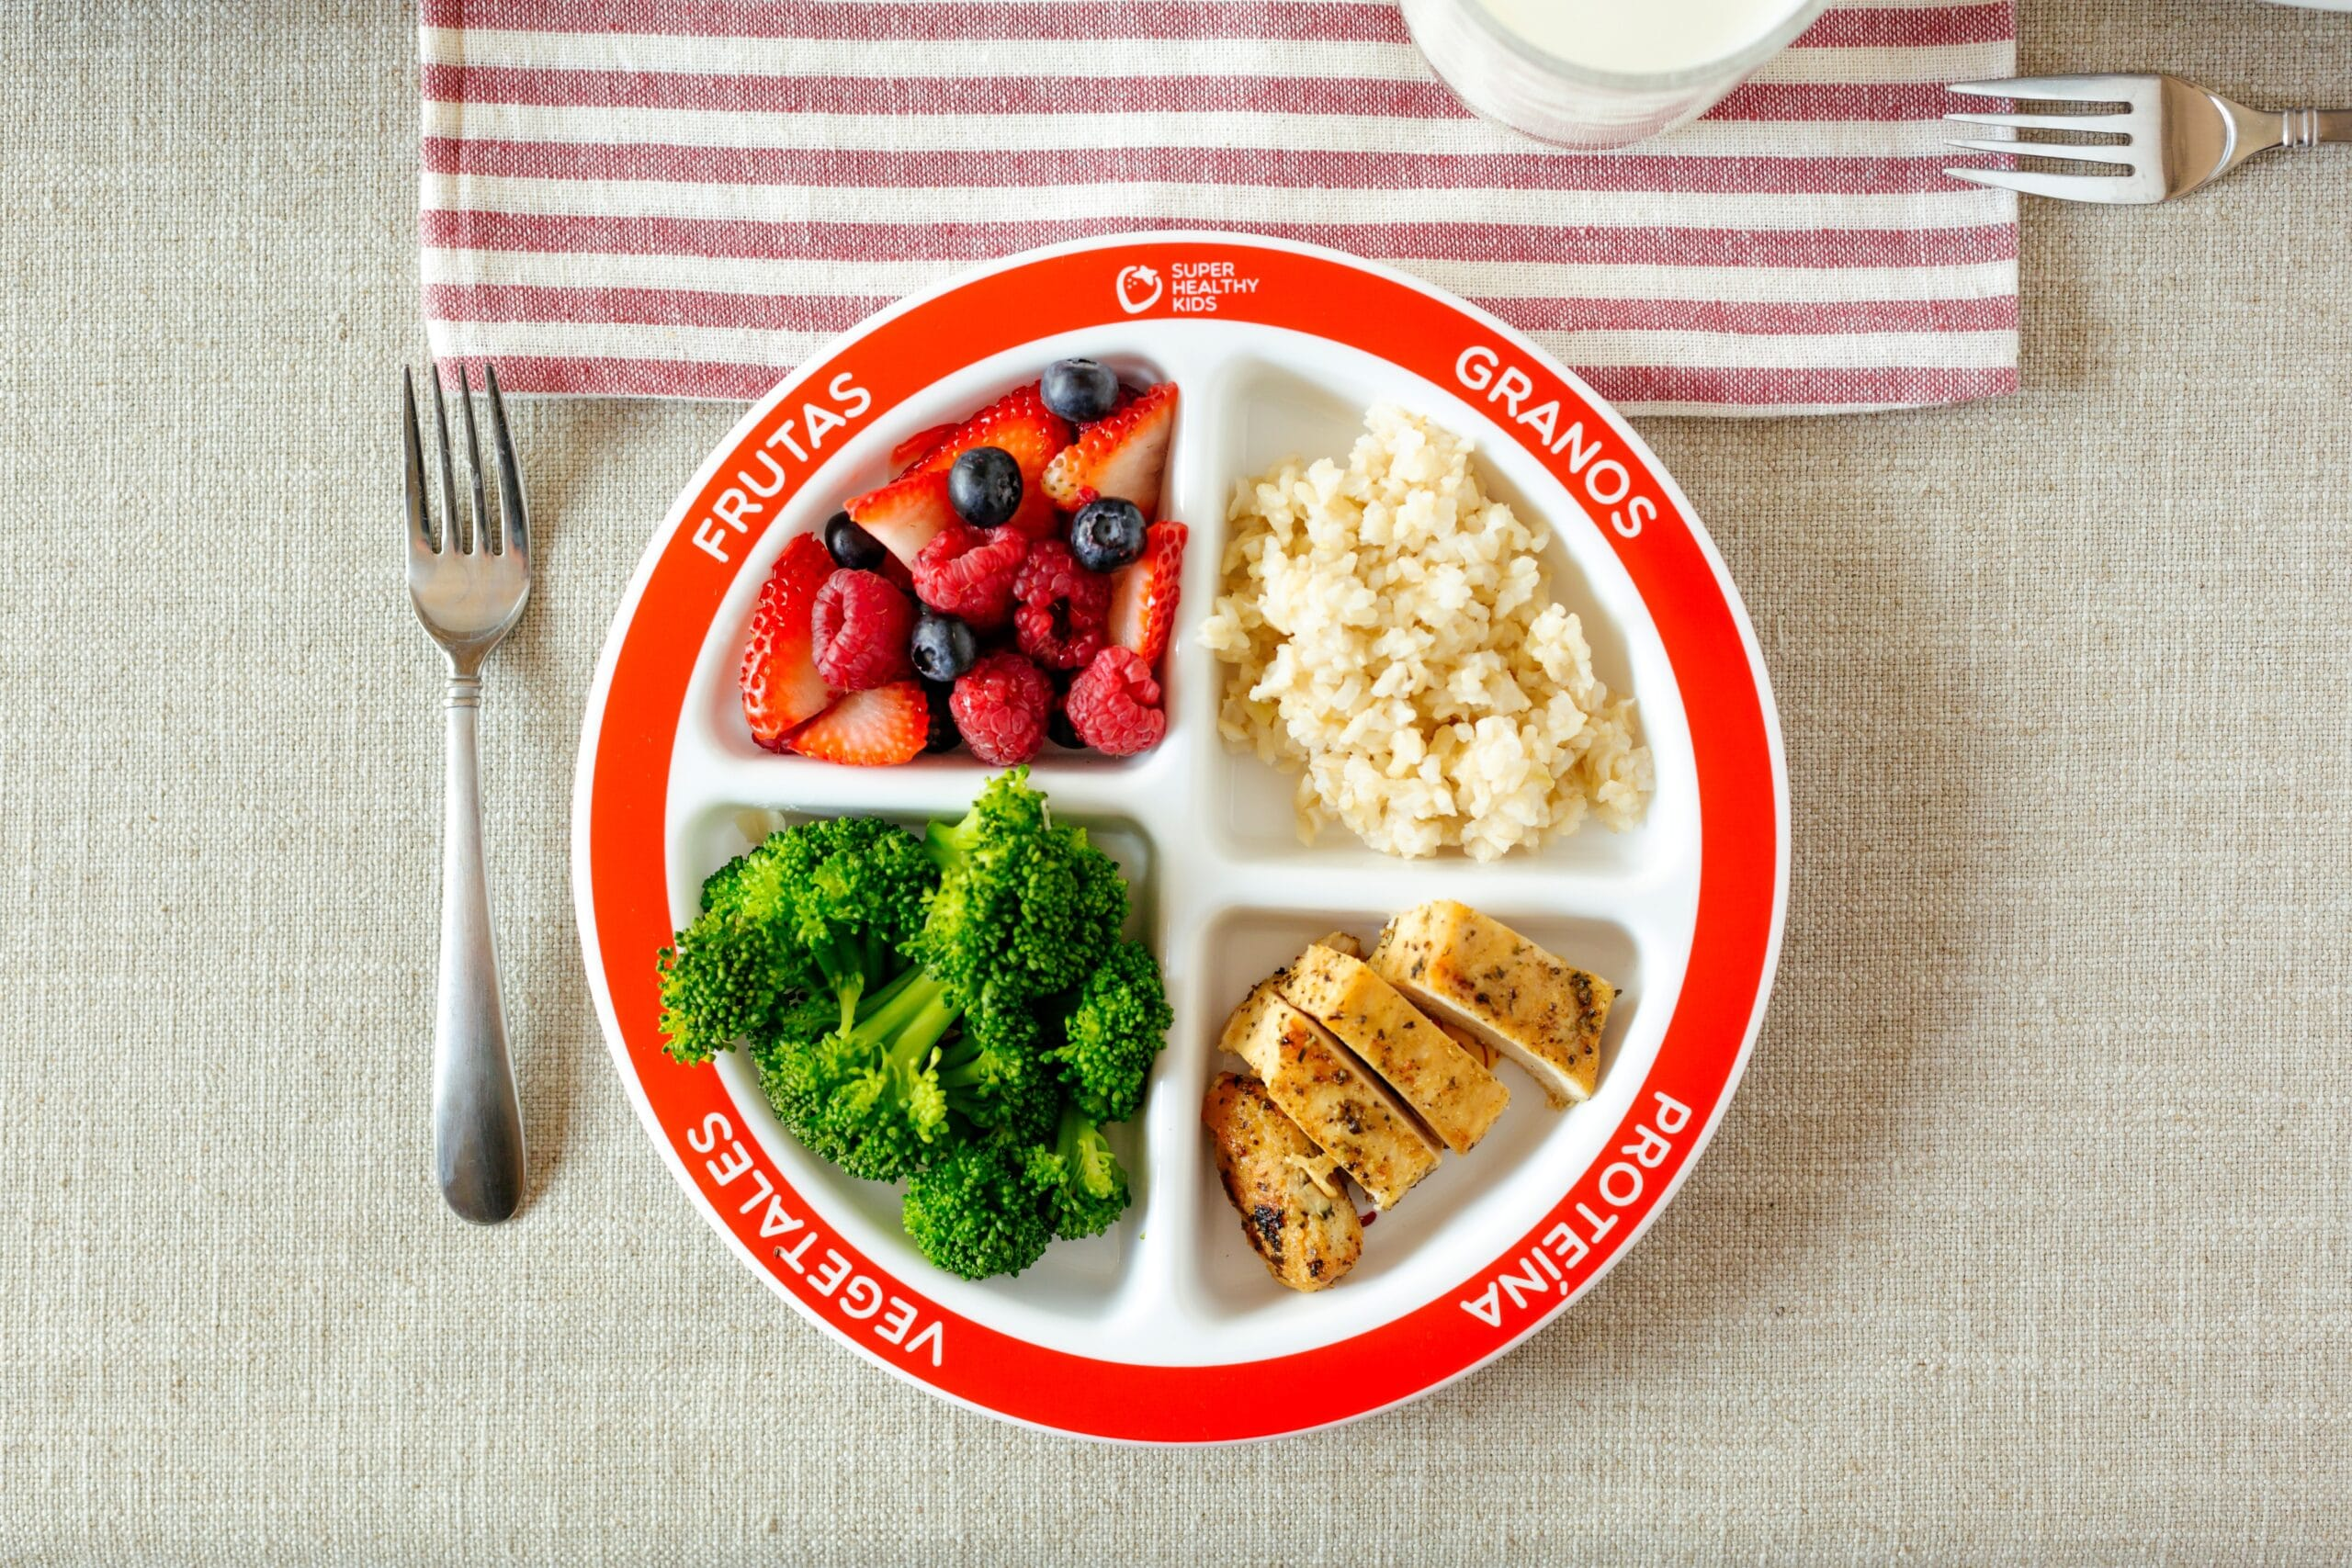 MyPlate Guide to Portion Sizes - Super Healthy Kids